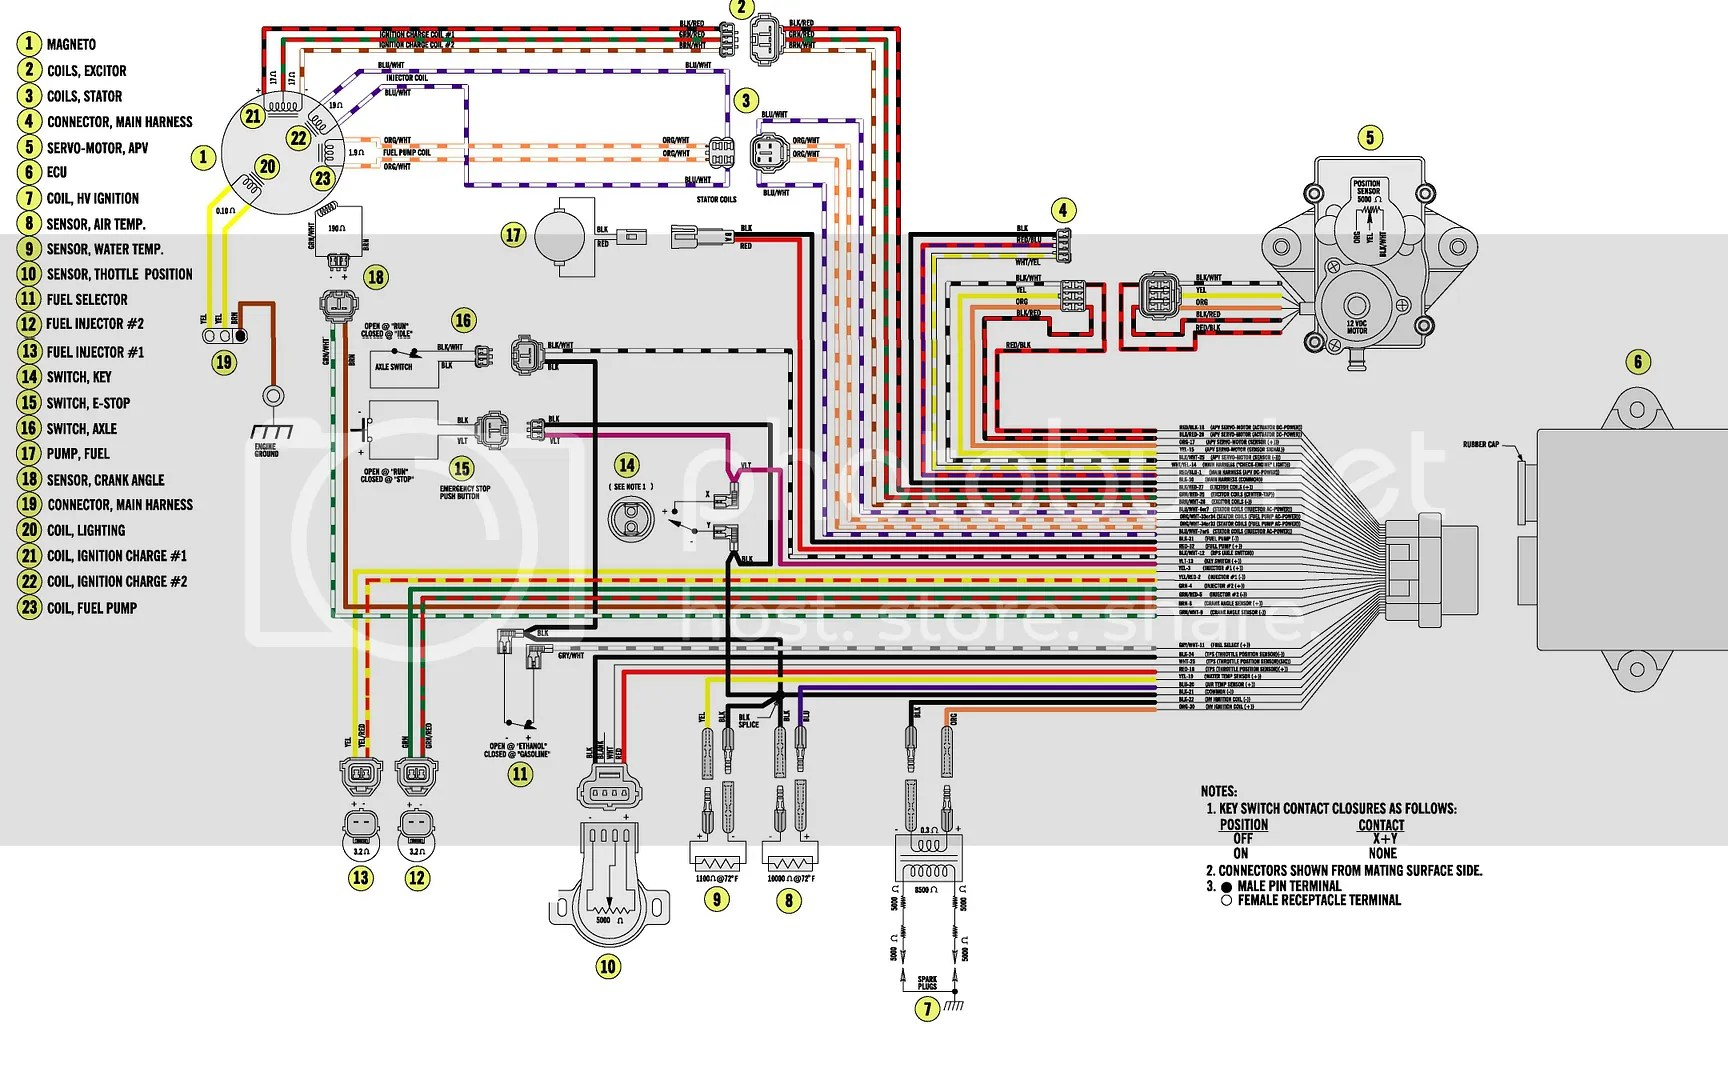 hight resolution of 2005 arctic cat wiring diagram wiring diagram sheet mix arctic cat ignition wiring schematics wiring diagram